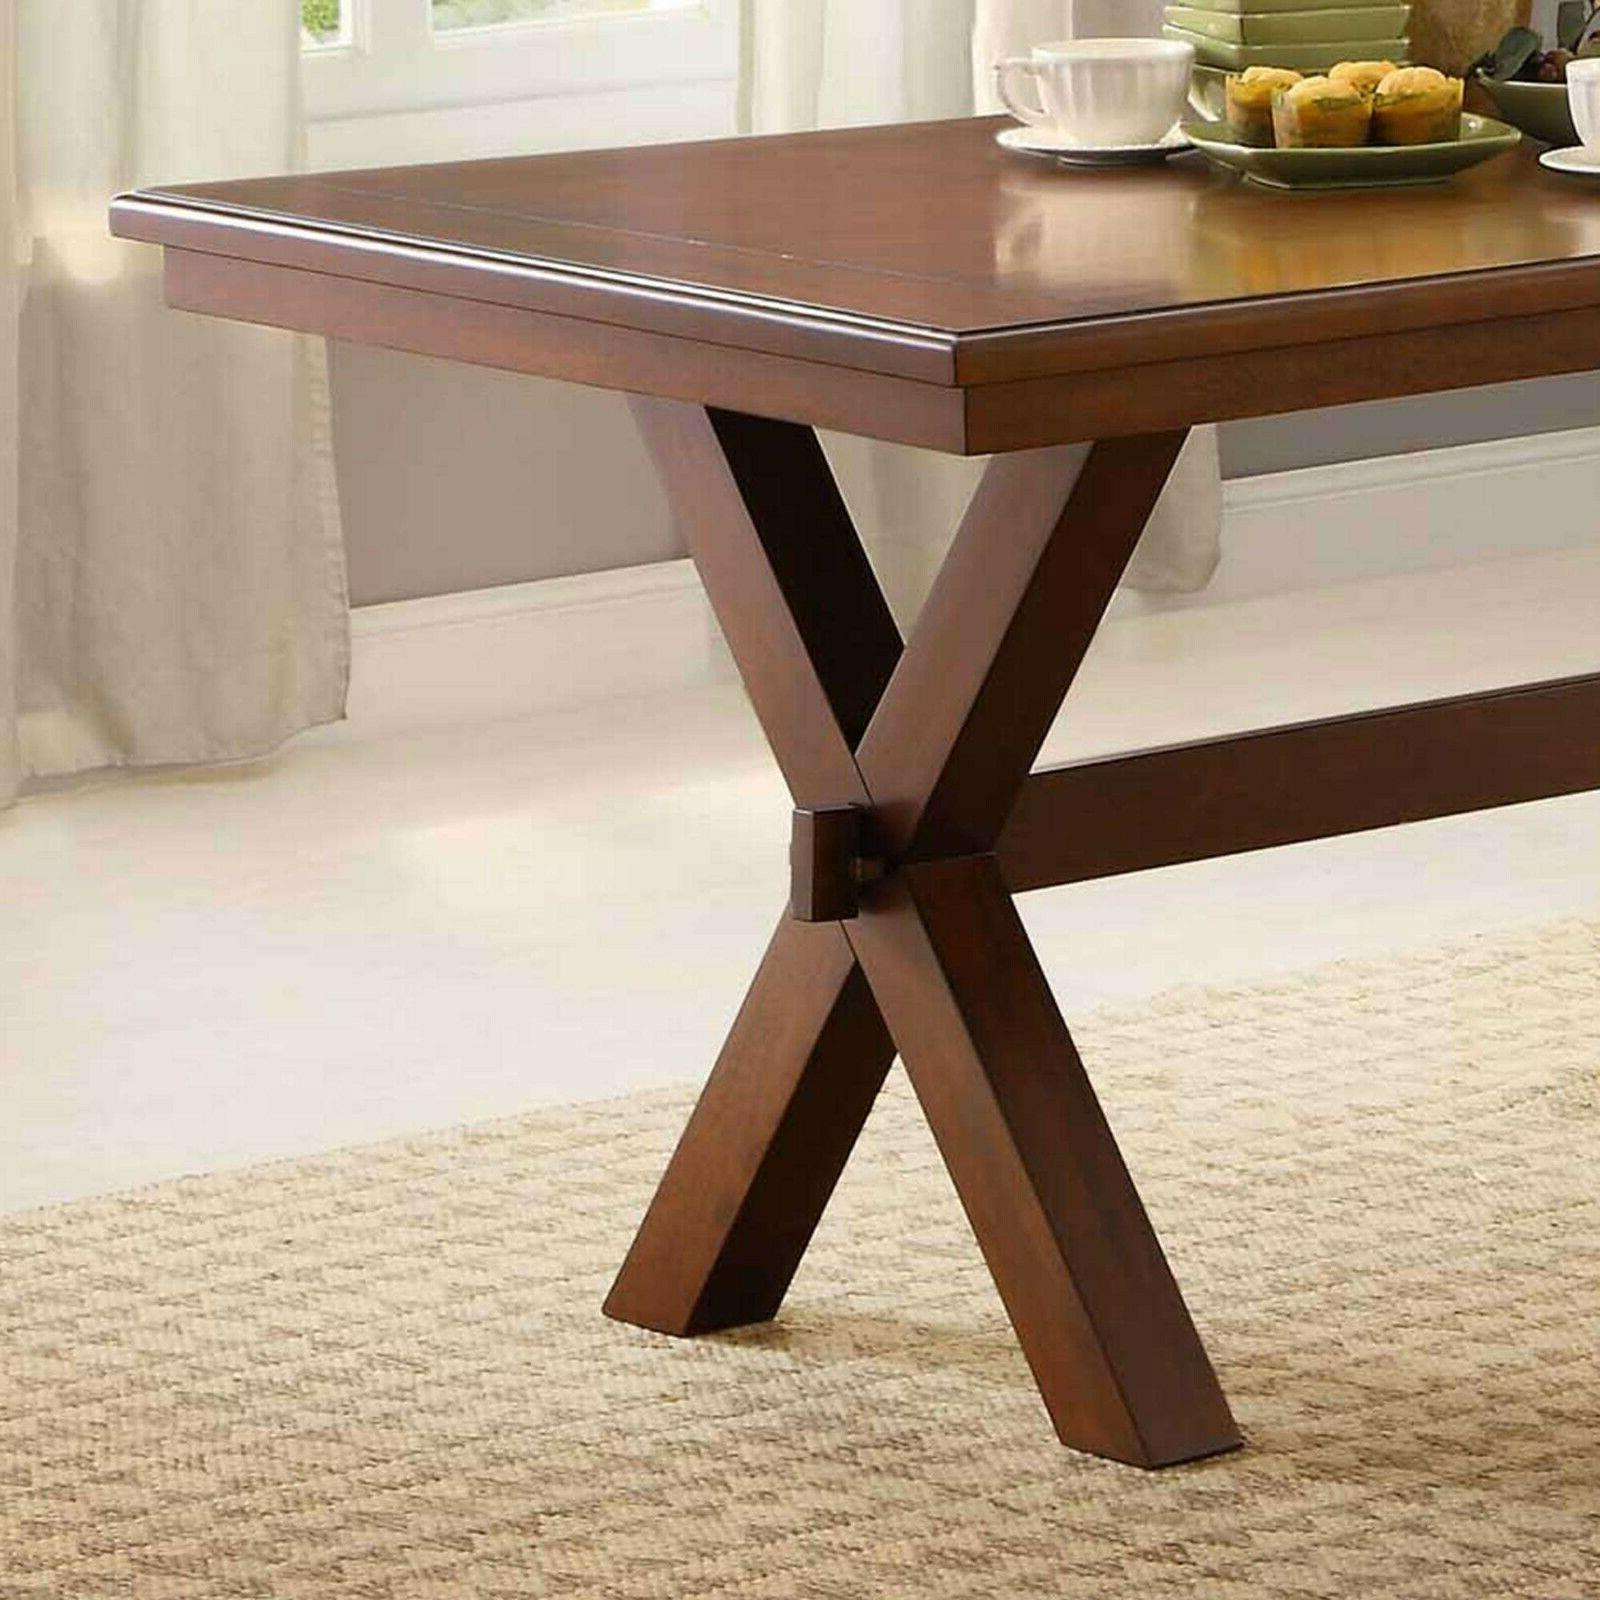 Dining Room Table Farmhouse Wooden And Seat